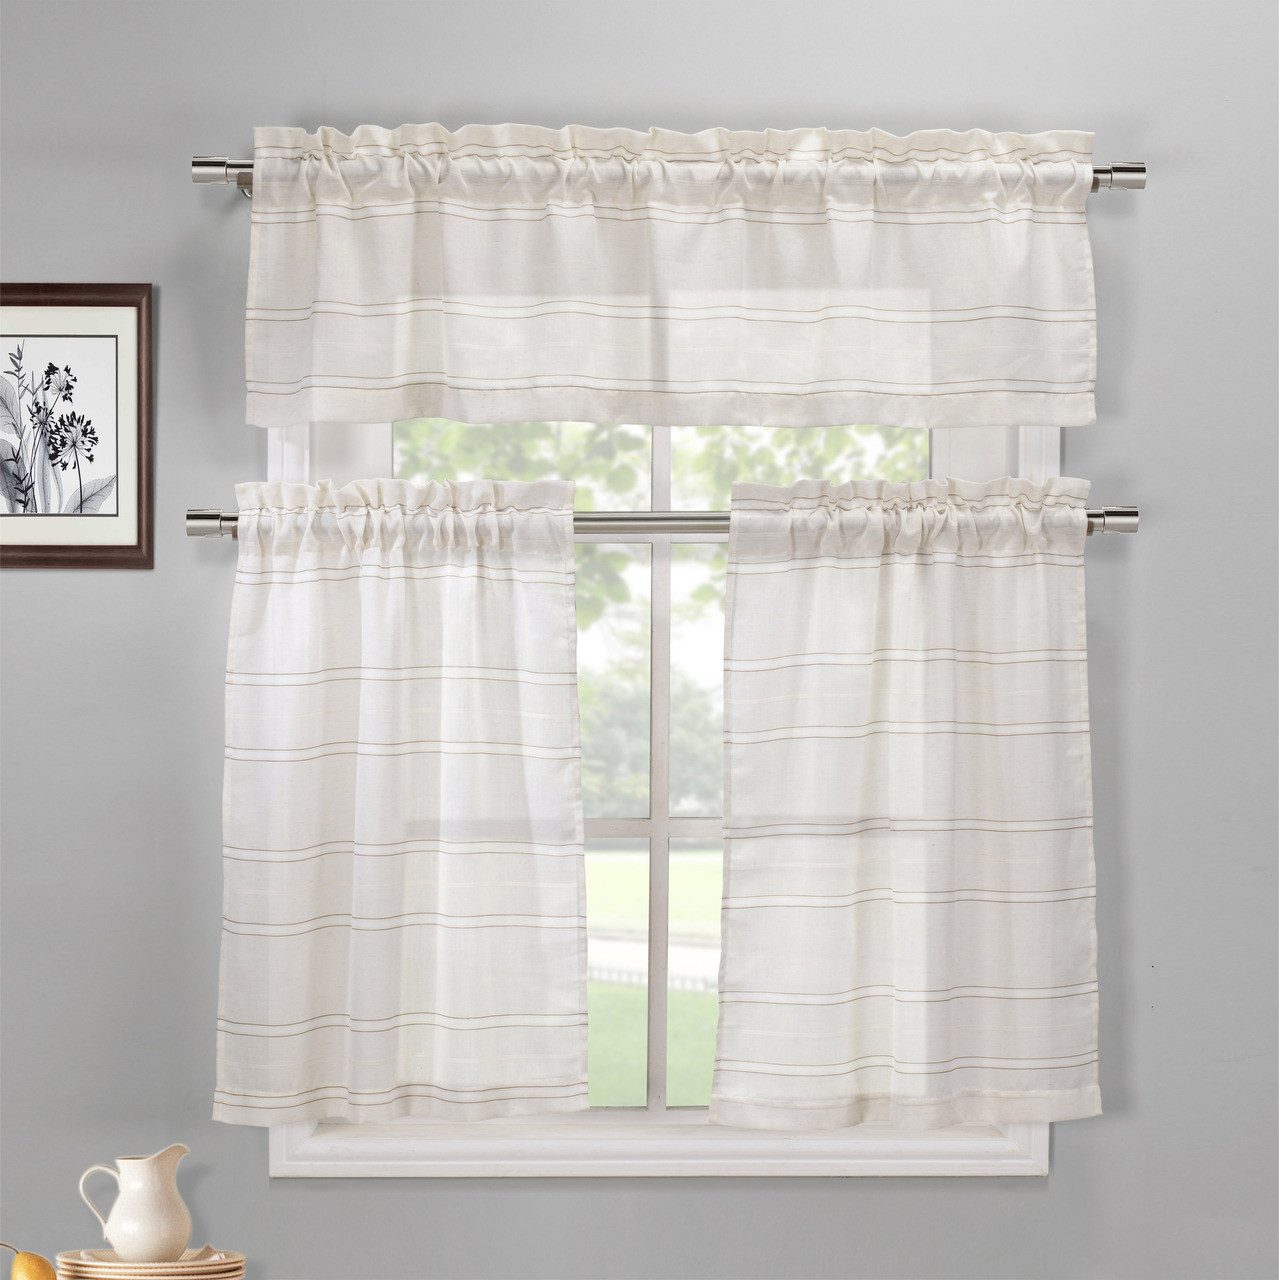 Linen And Coffee 3 Piece Kitchen Window Curtain Set 1 Valance 2 Tiers My Infinity Store